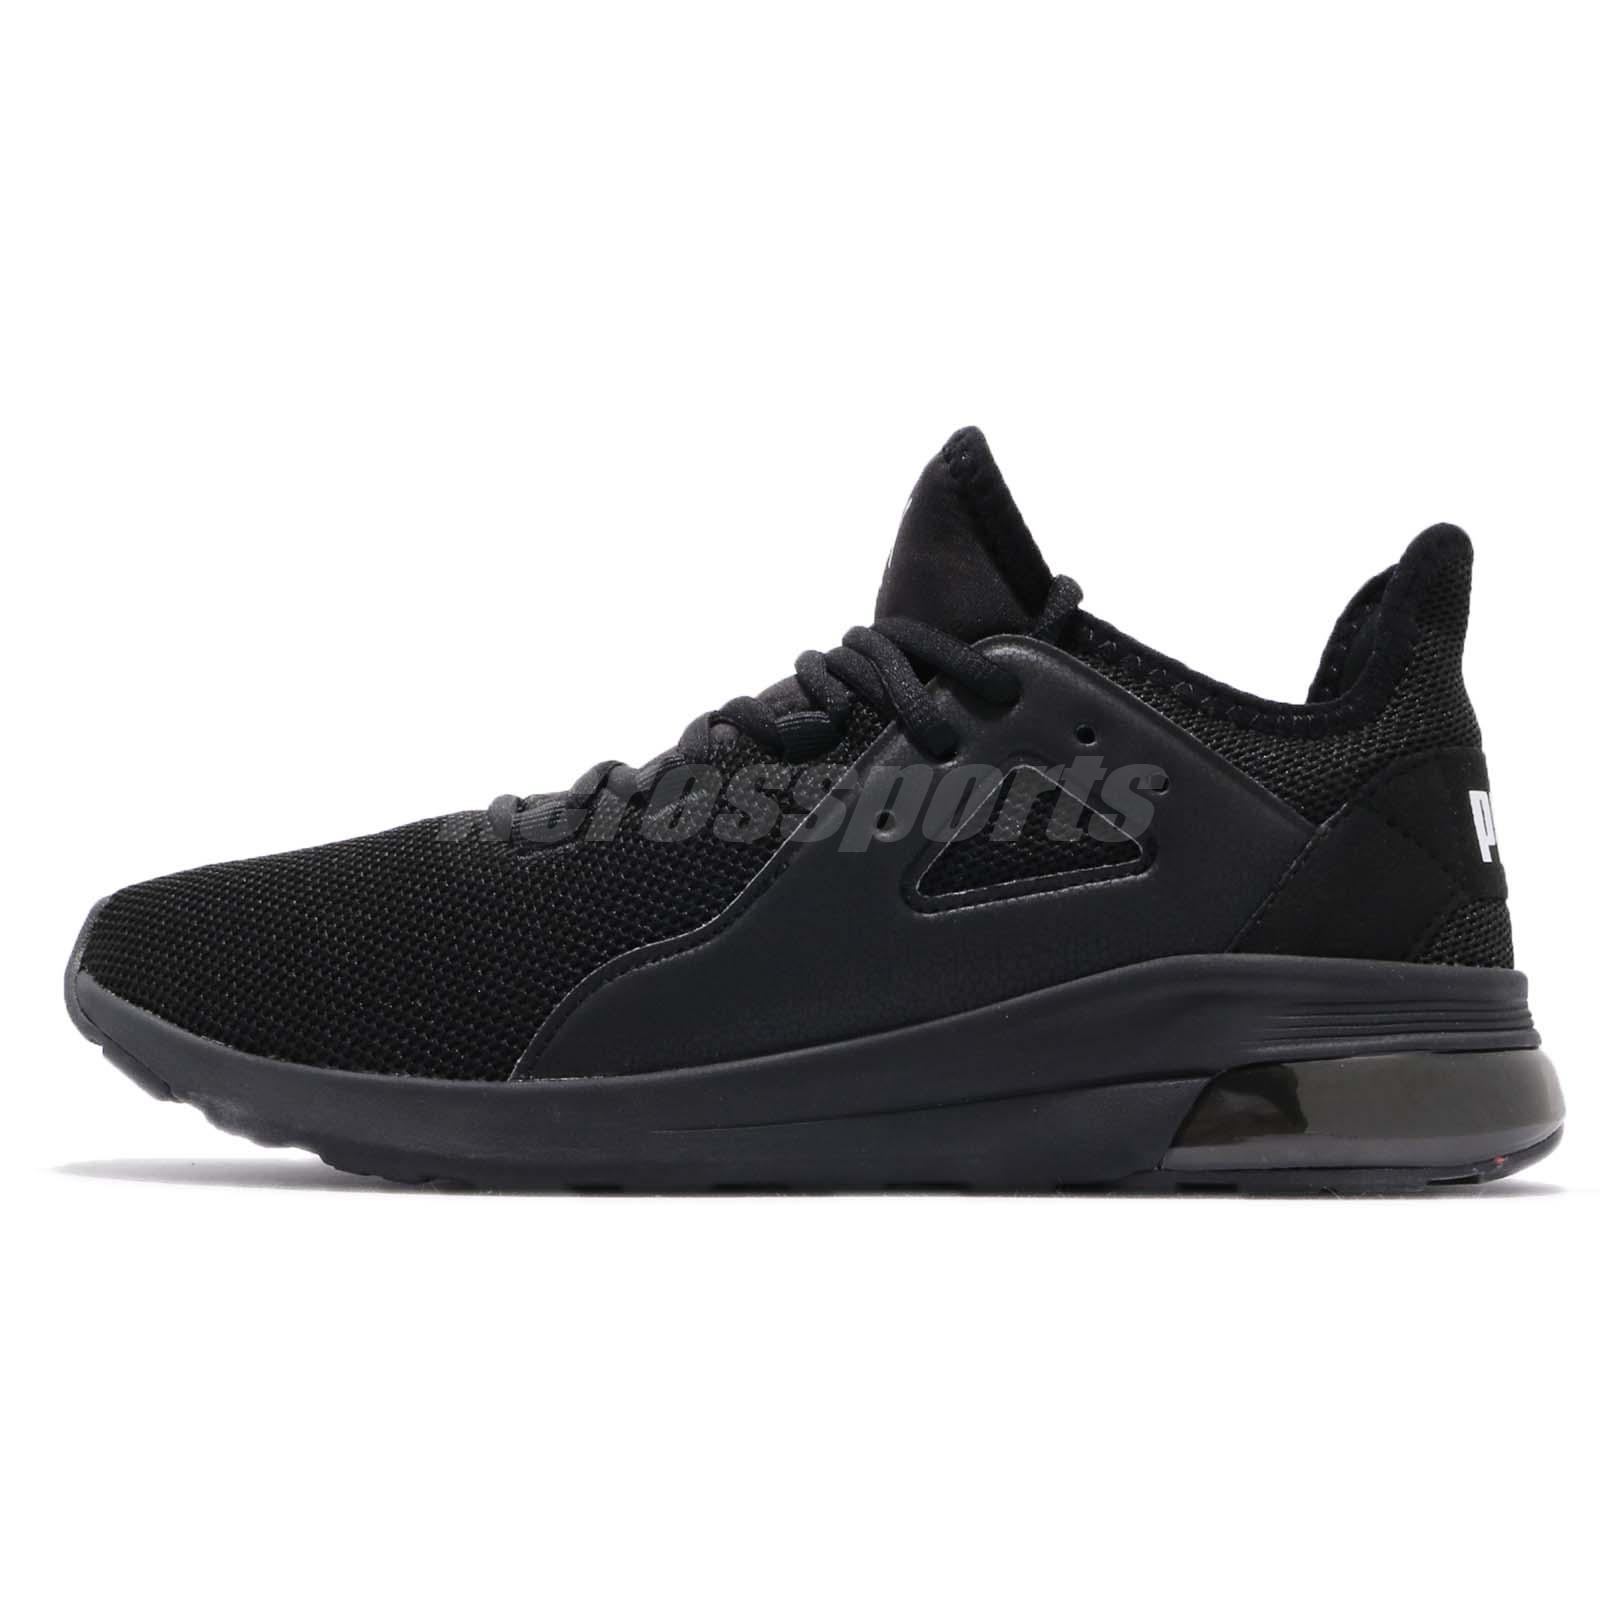 df18be96694c0a Puma Electron Street Black White Men Running Casual Shoes Sneakers 367309-01